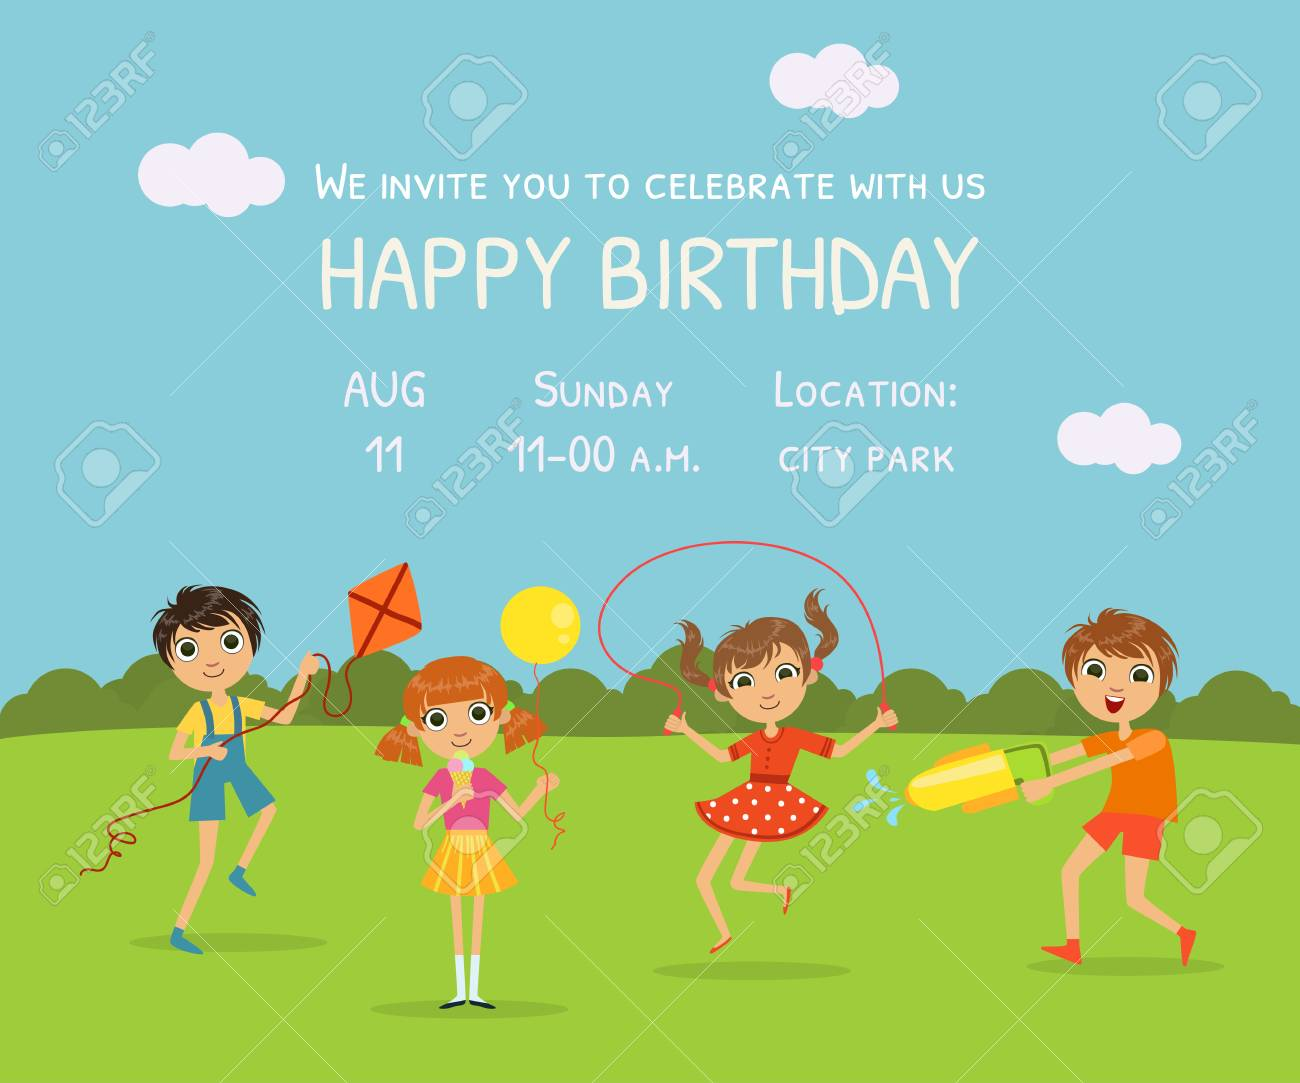 happy birthday invitation card with cute little kids in nature